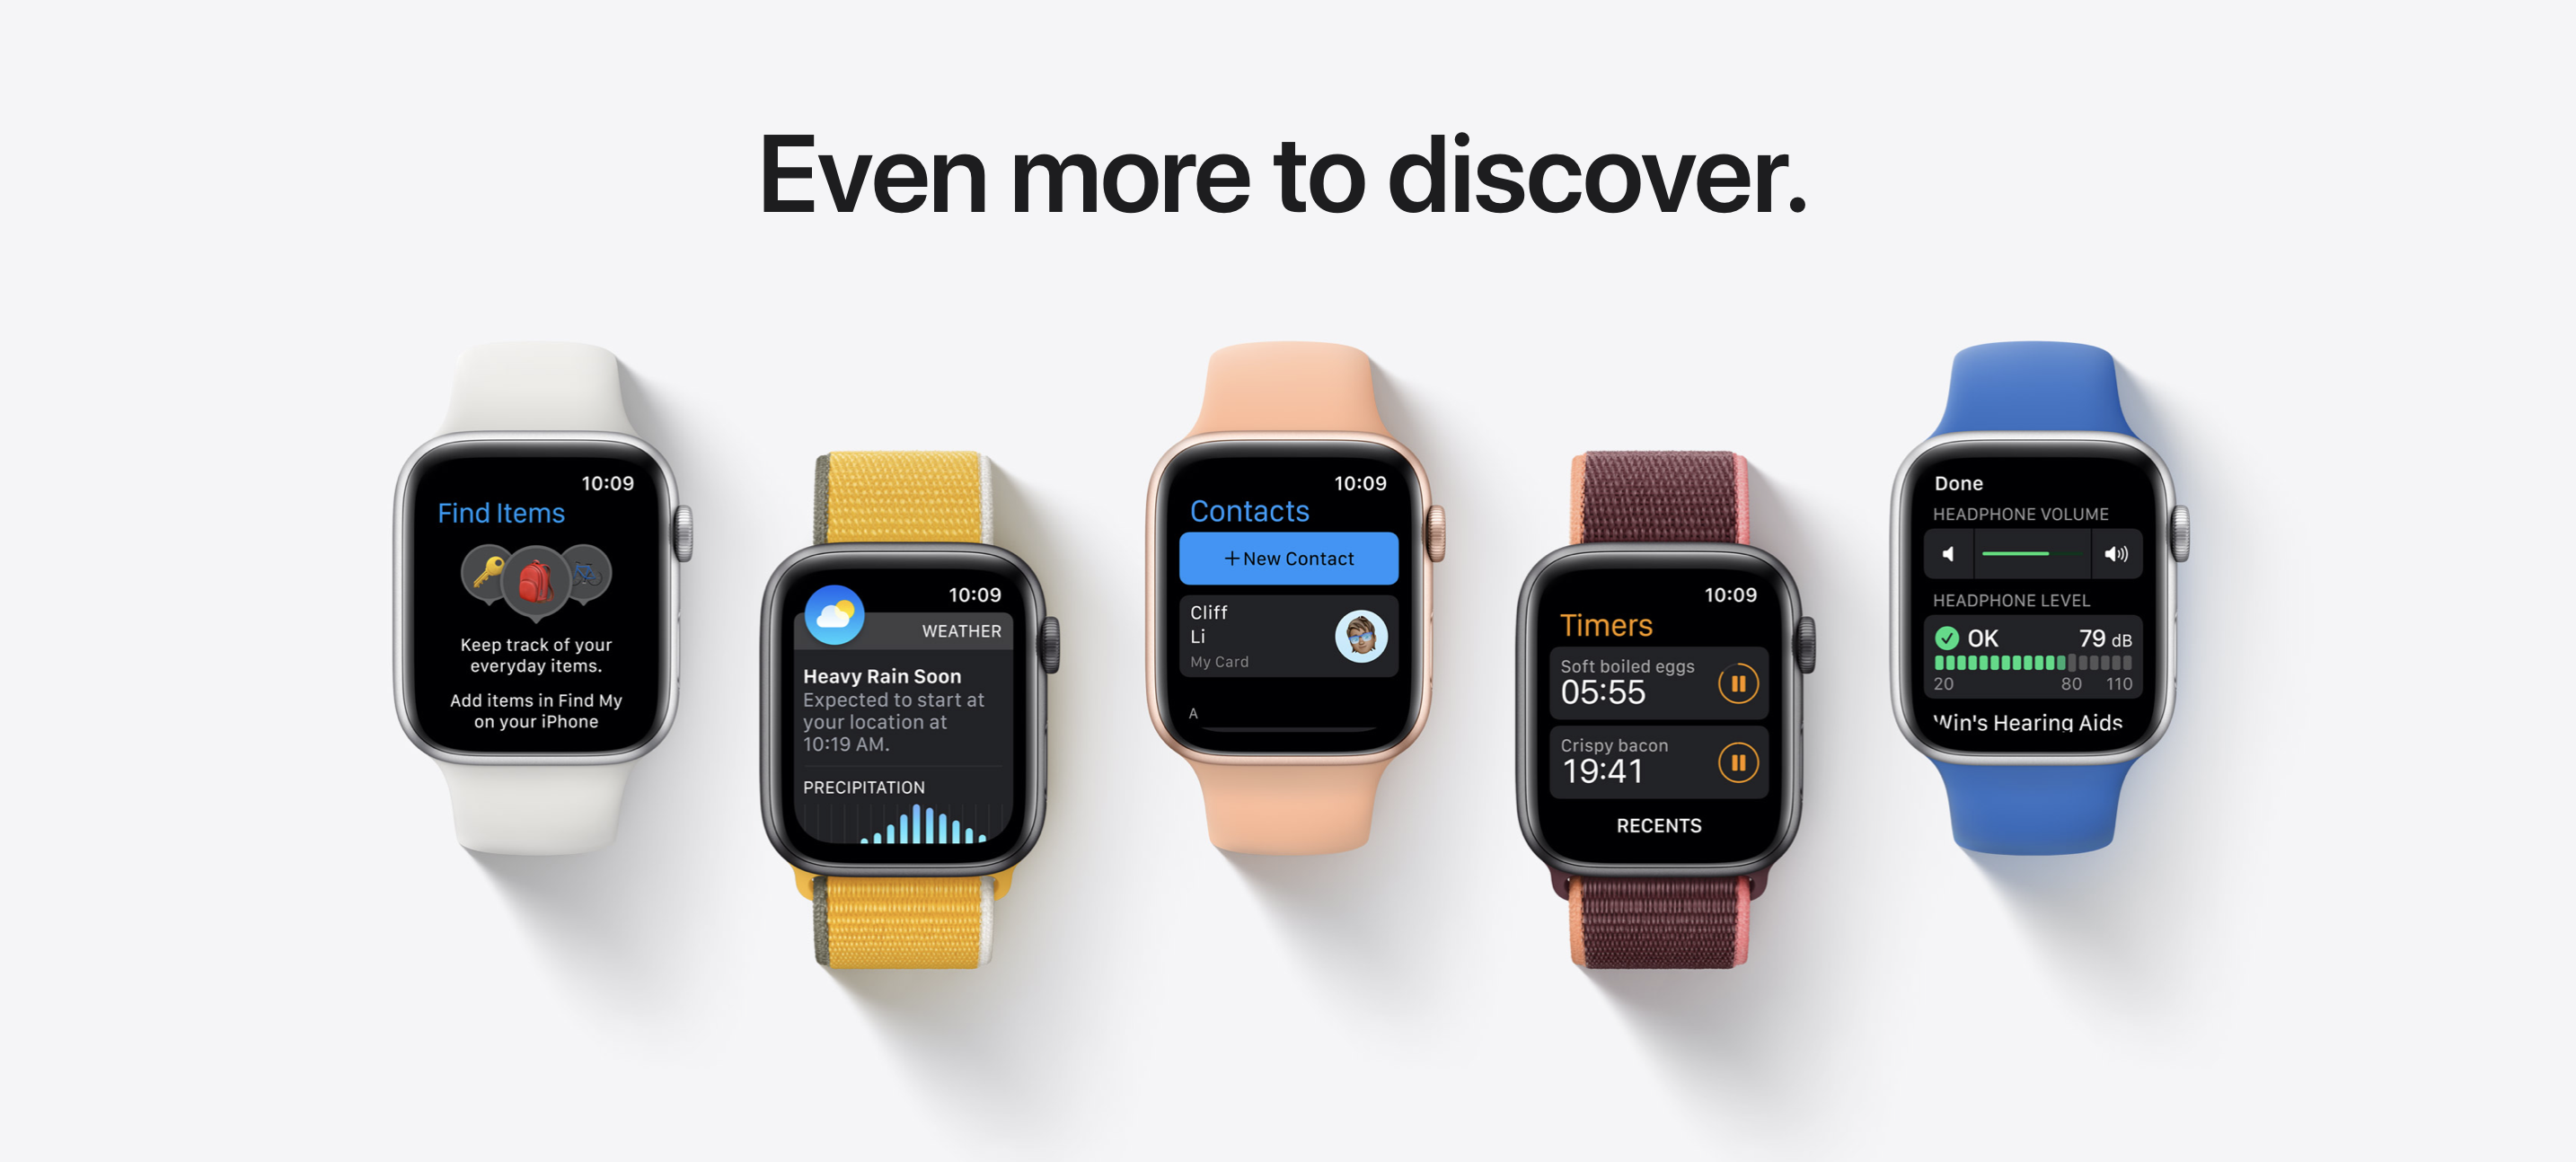 All you must know about the new Apple Watch.